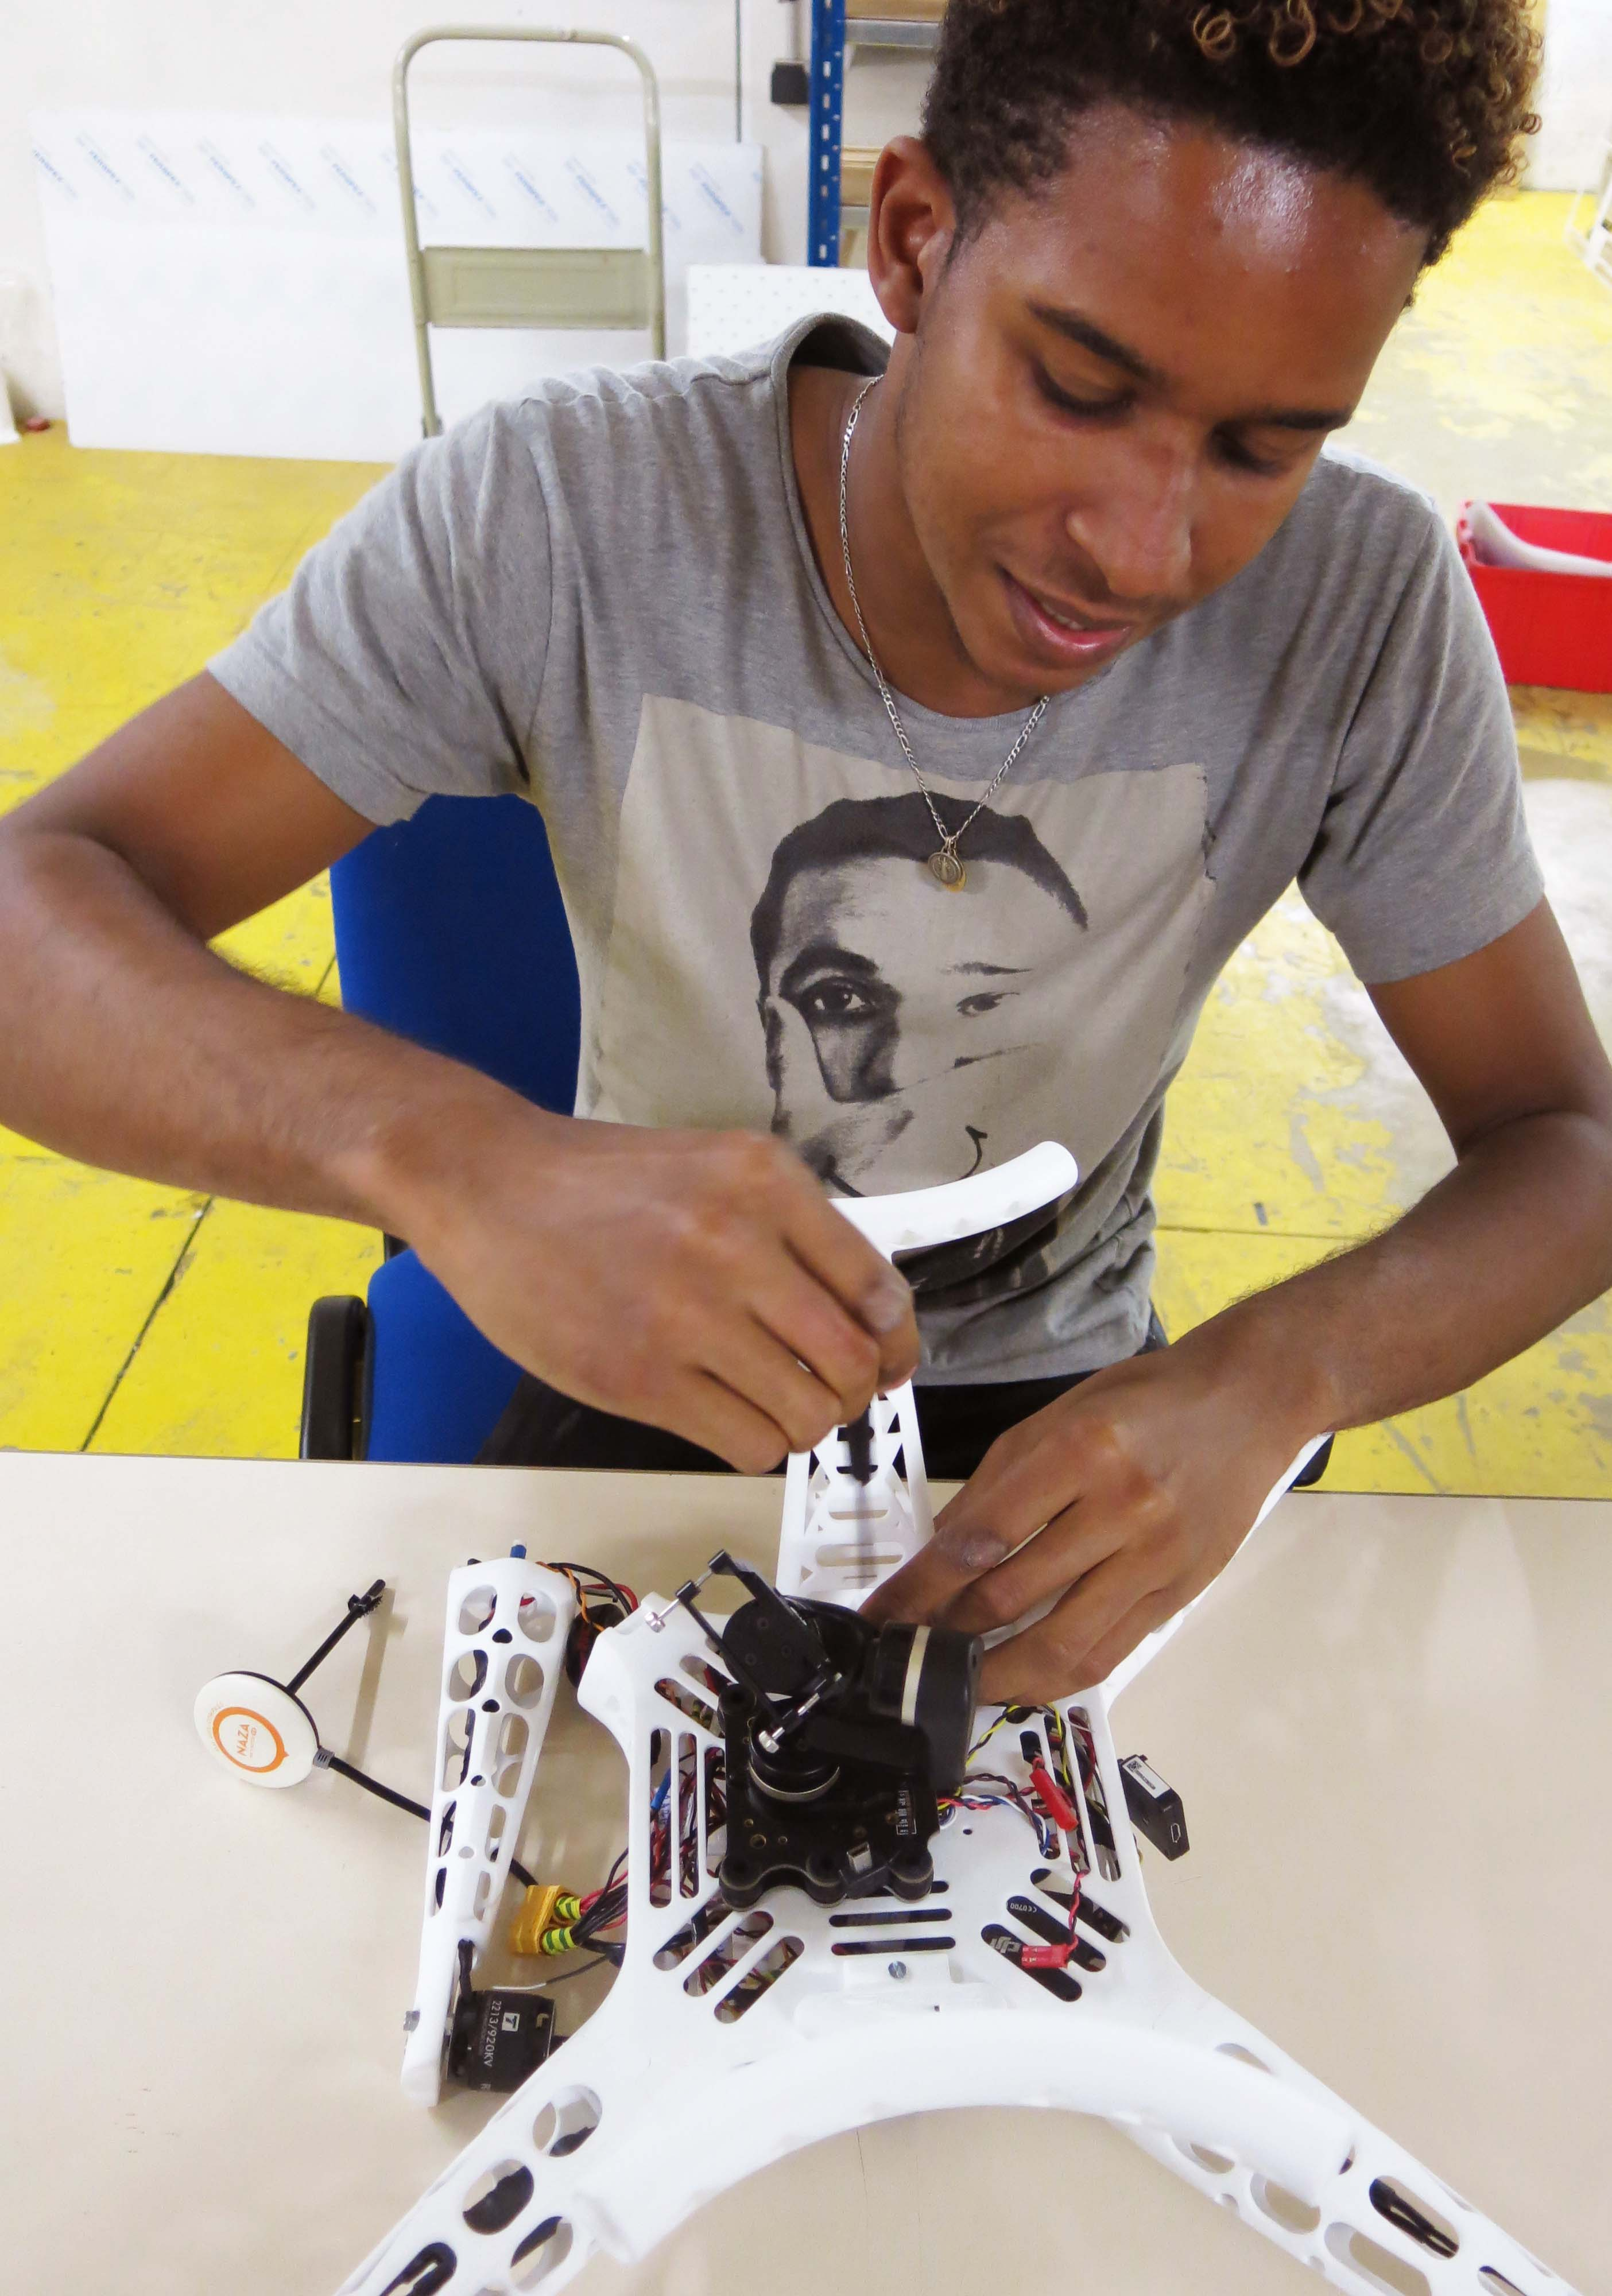 Alexis and his 3D printed drone